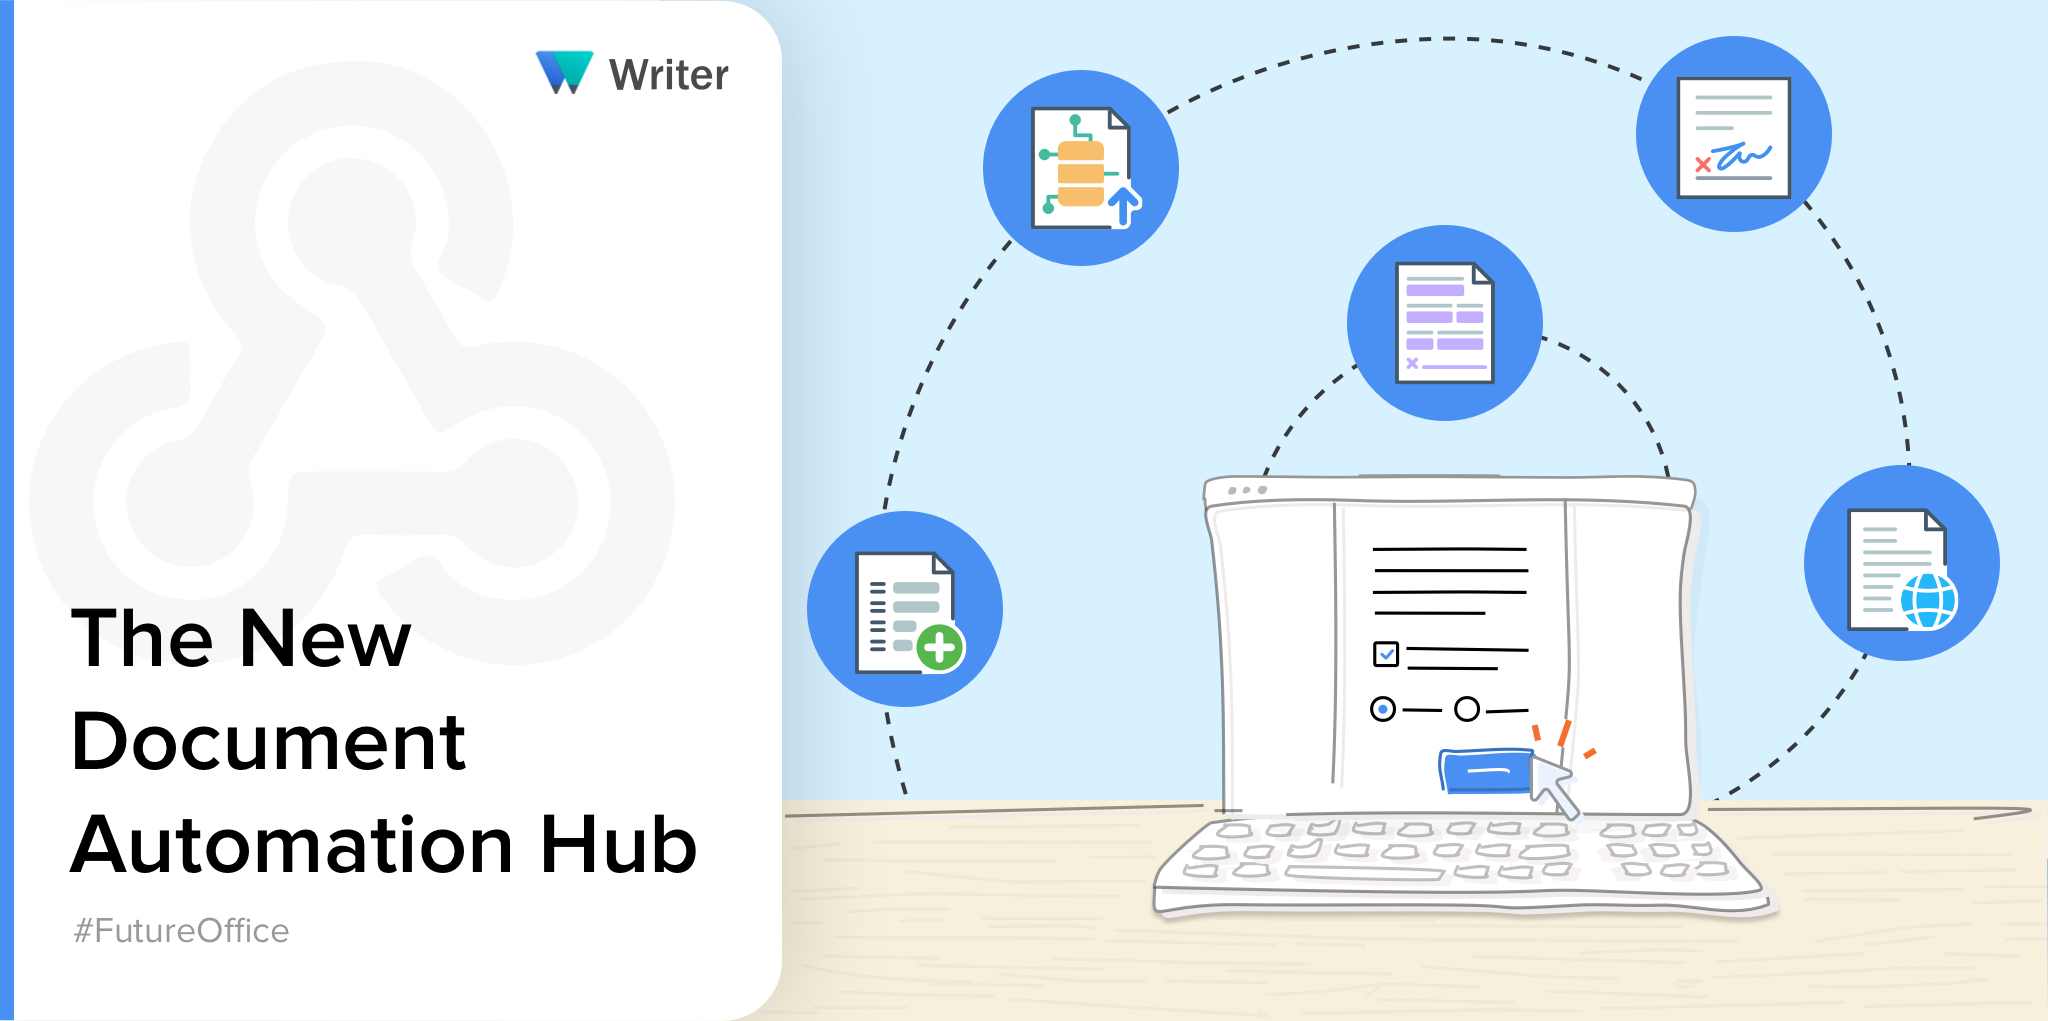 Optimize your paperwork digitally—introducing the all-new automation hub in Writer.